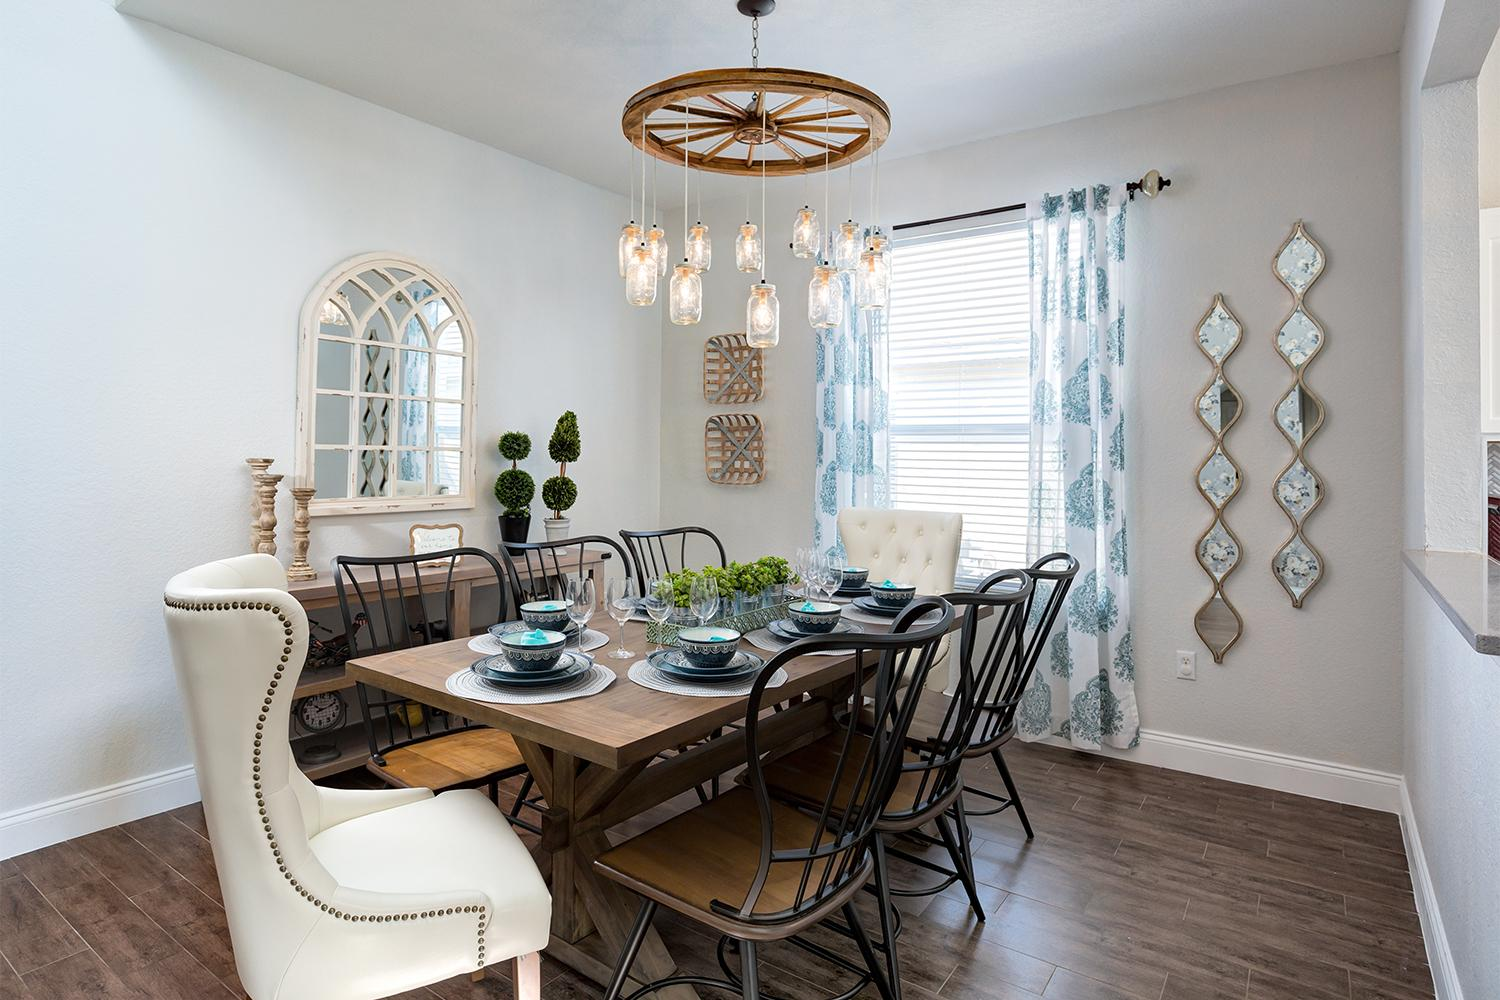 Large rustic farmhouse inspired dining table - seats 8